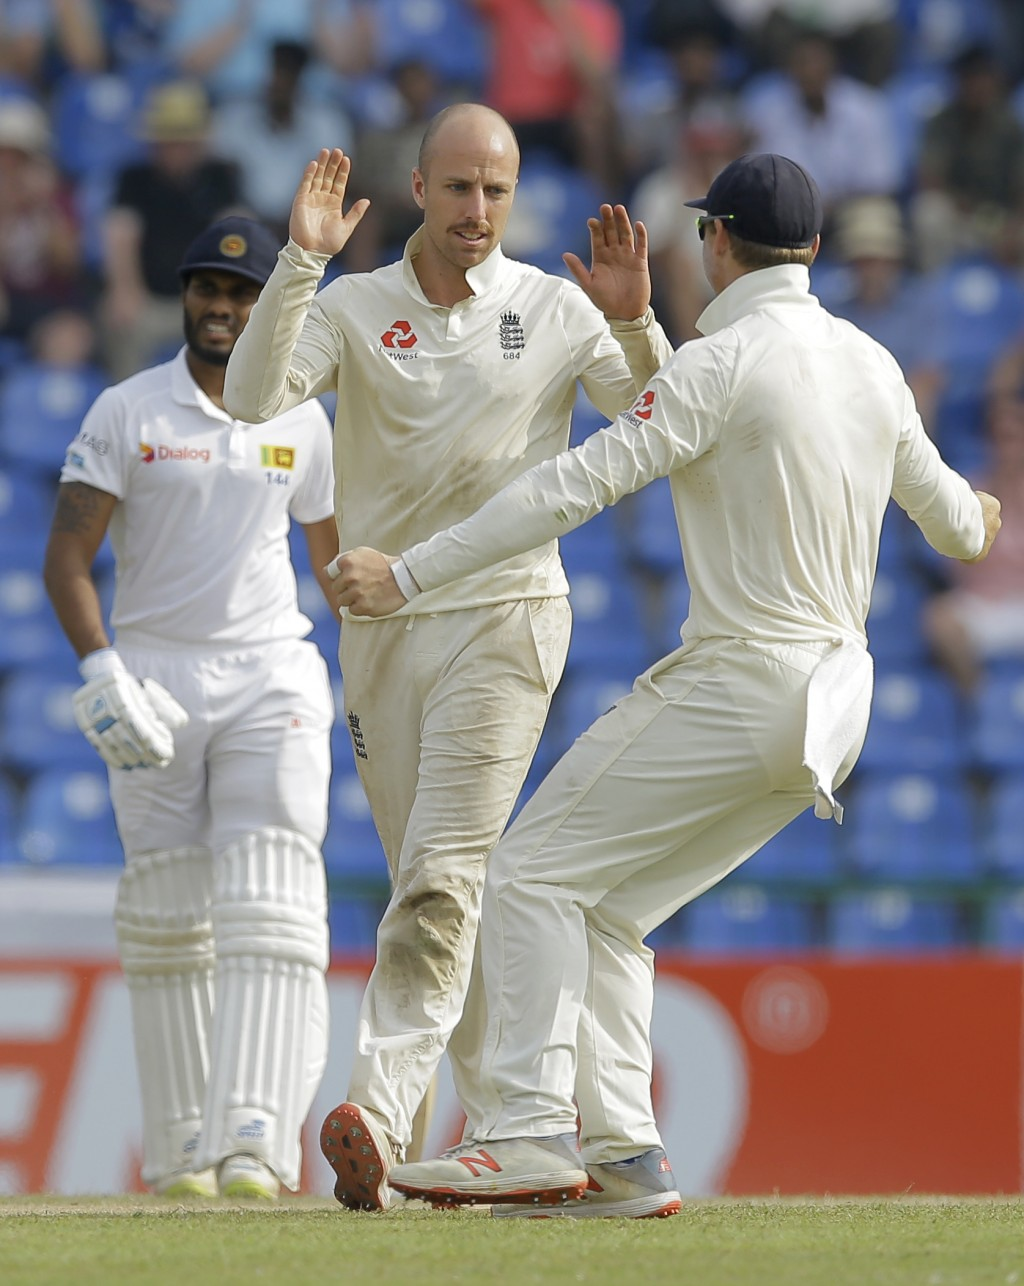 England's Jack Leach, center, celebrates the wicket of Sri Lanka's Dilruwan Perera with teammates during the second day of the second test cricket mat